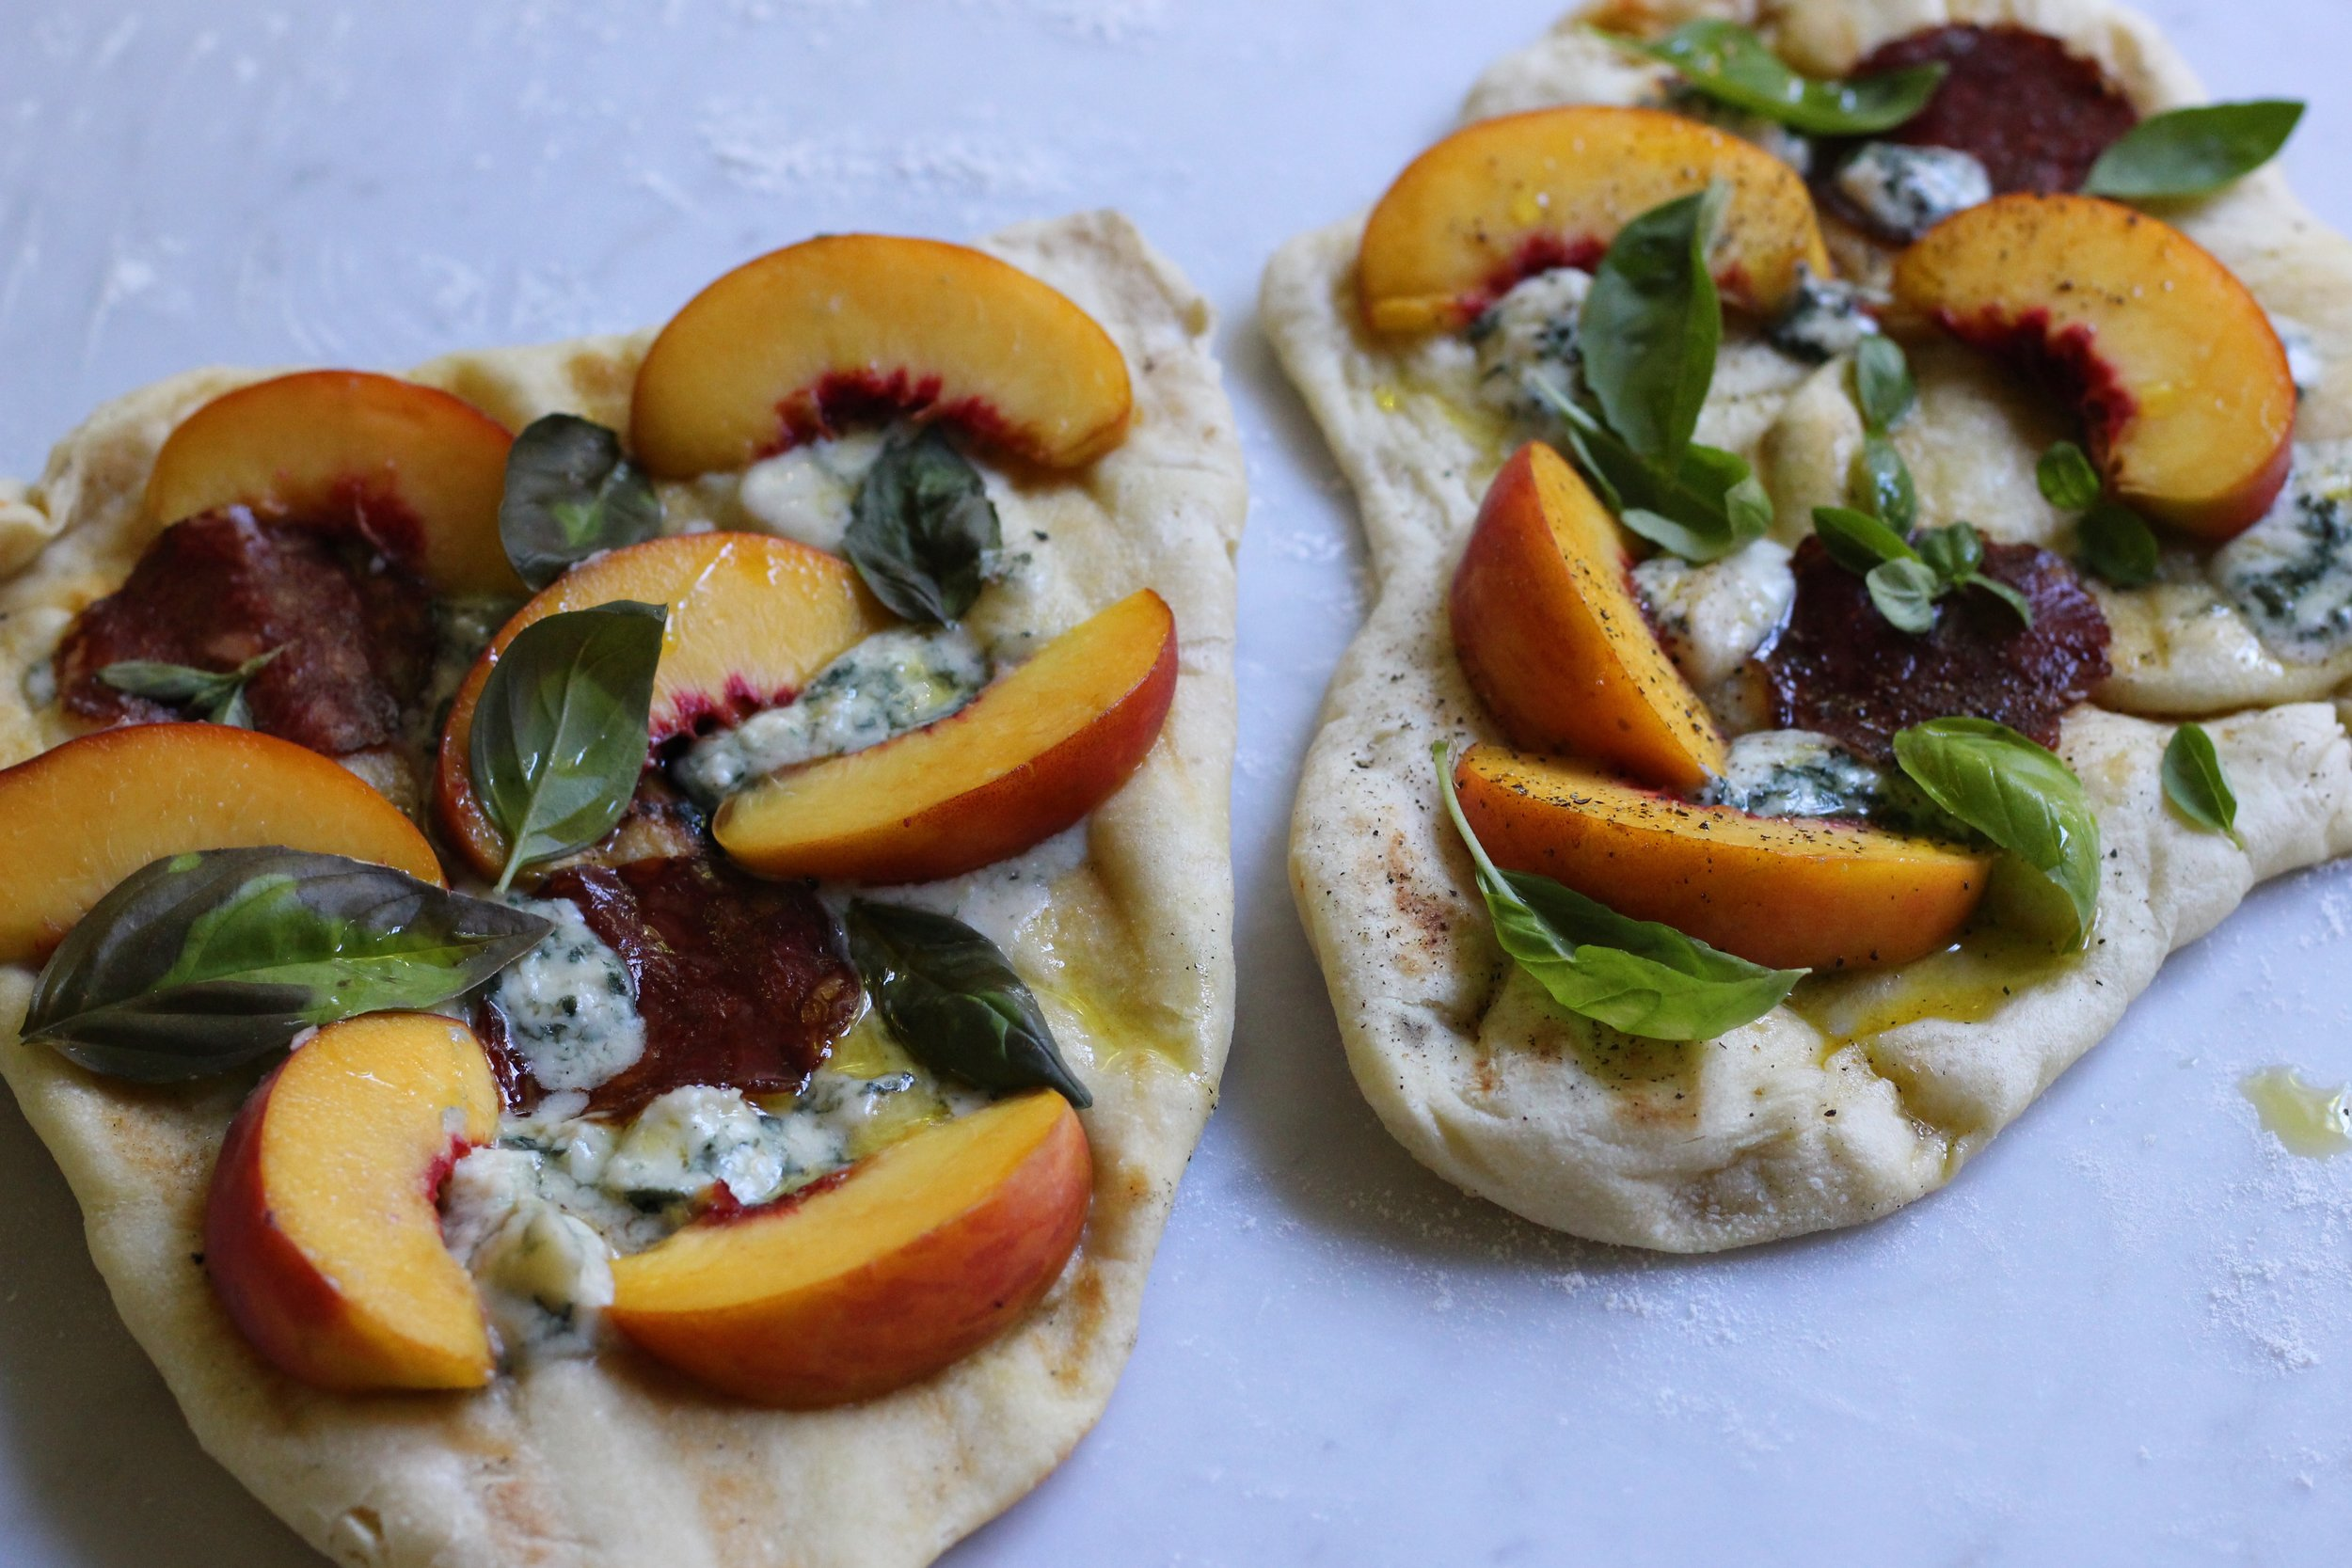 Mini grilled pizzas with fresh peaches, basil, spicy salami and blue cheese. A great way to end the summer!